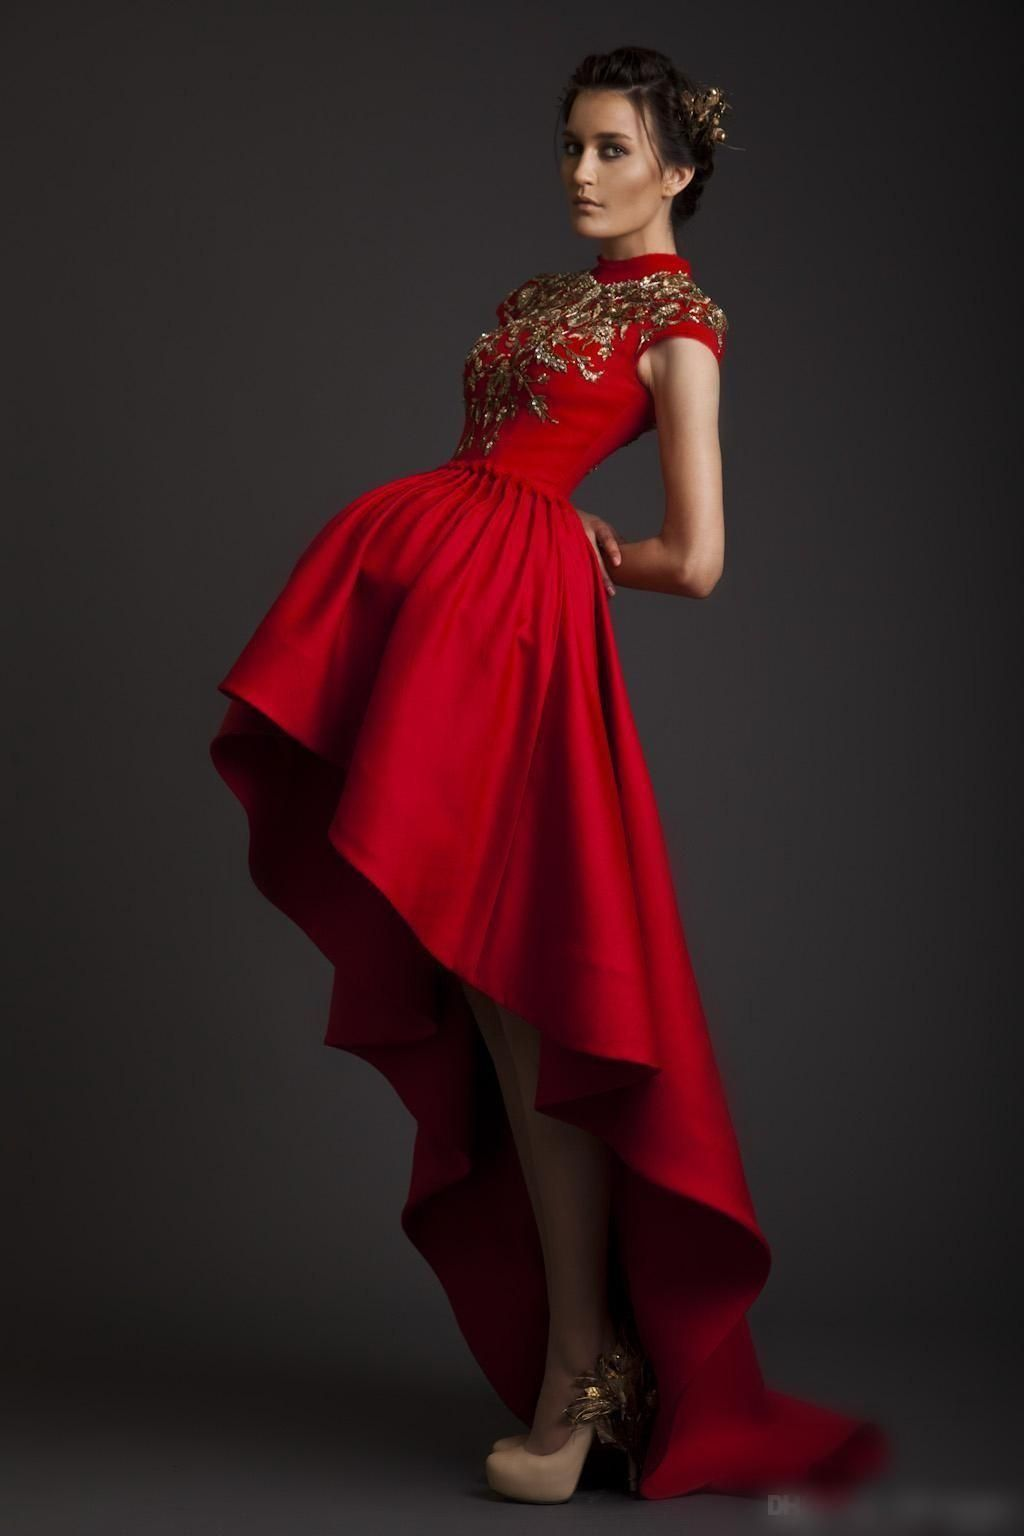 Krikor jabotian 2016 vintage high collar gold red high low prom krikor jabotian 2016 vintage high collar gold red high low prom dresses beads appliqued formal evening party gowns arabic ombrellifo Choice Image